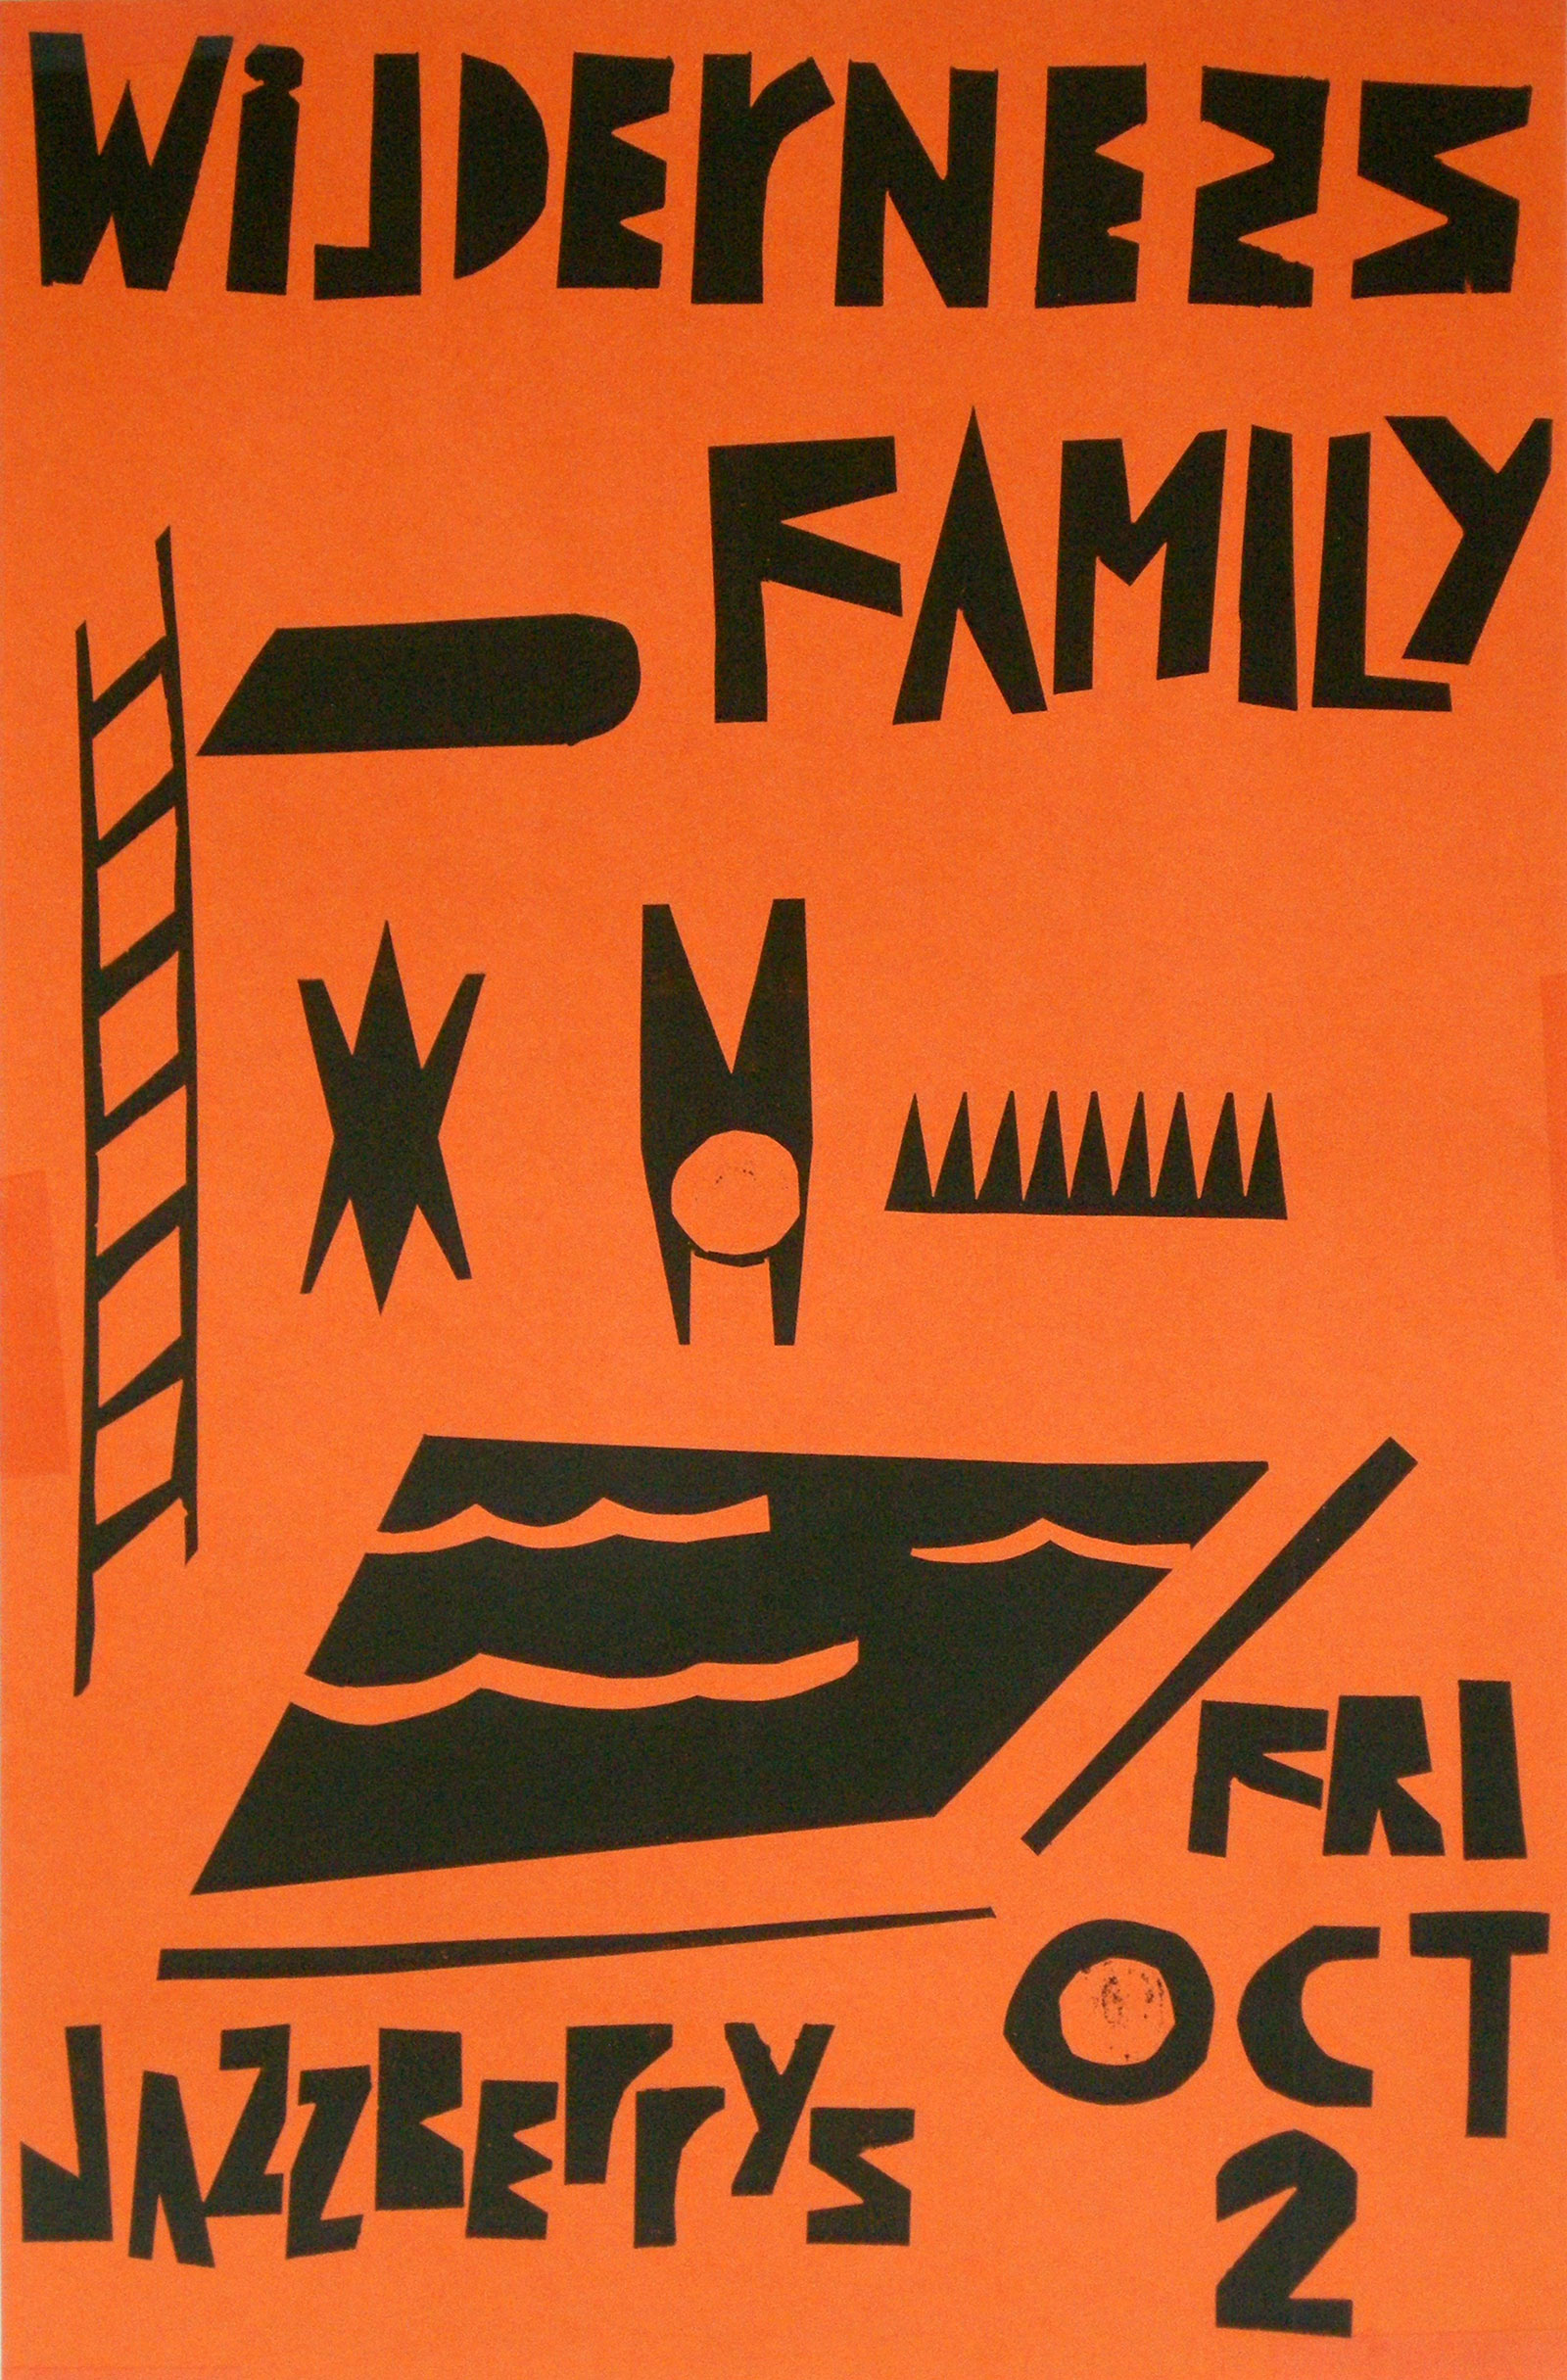 Wilderness Family poster by Gary Miexner for performance at Jazzberys in Rochester, New York 1987